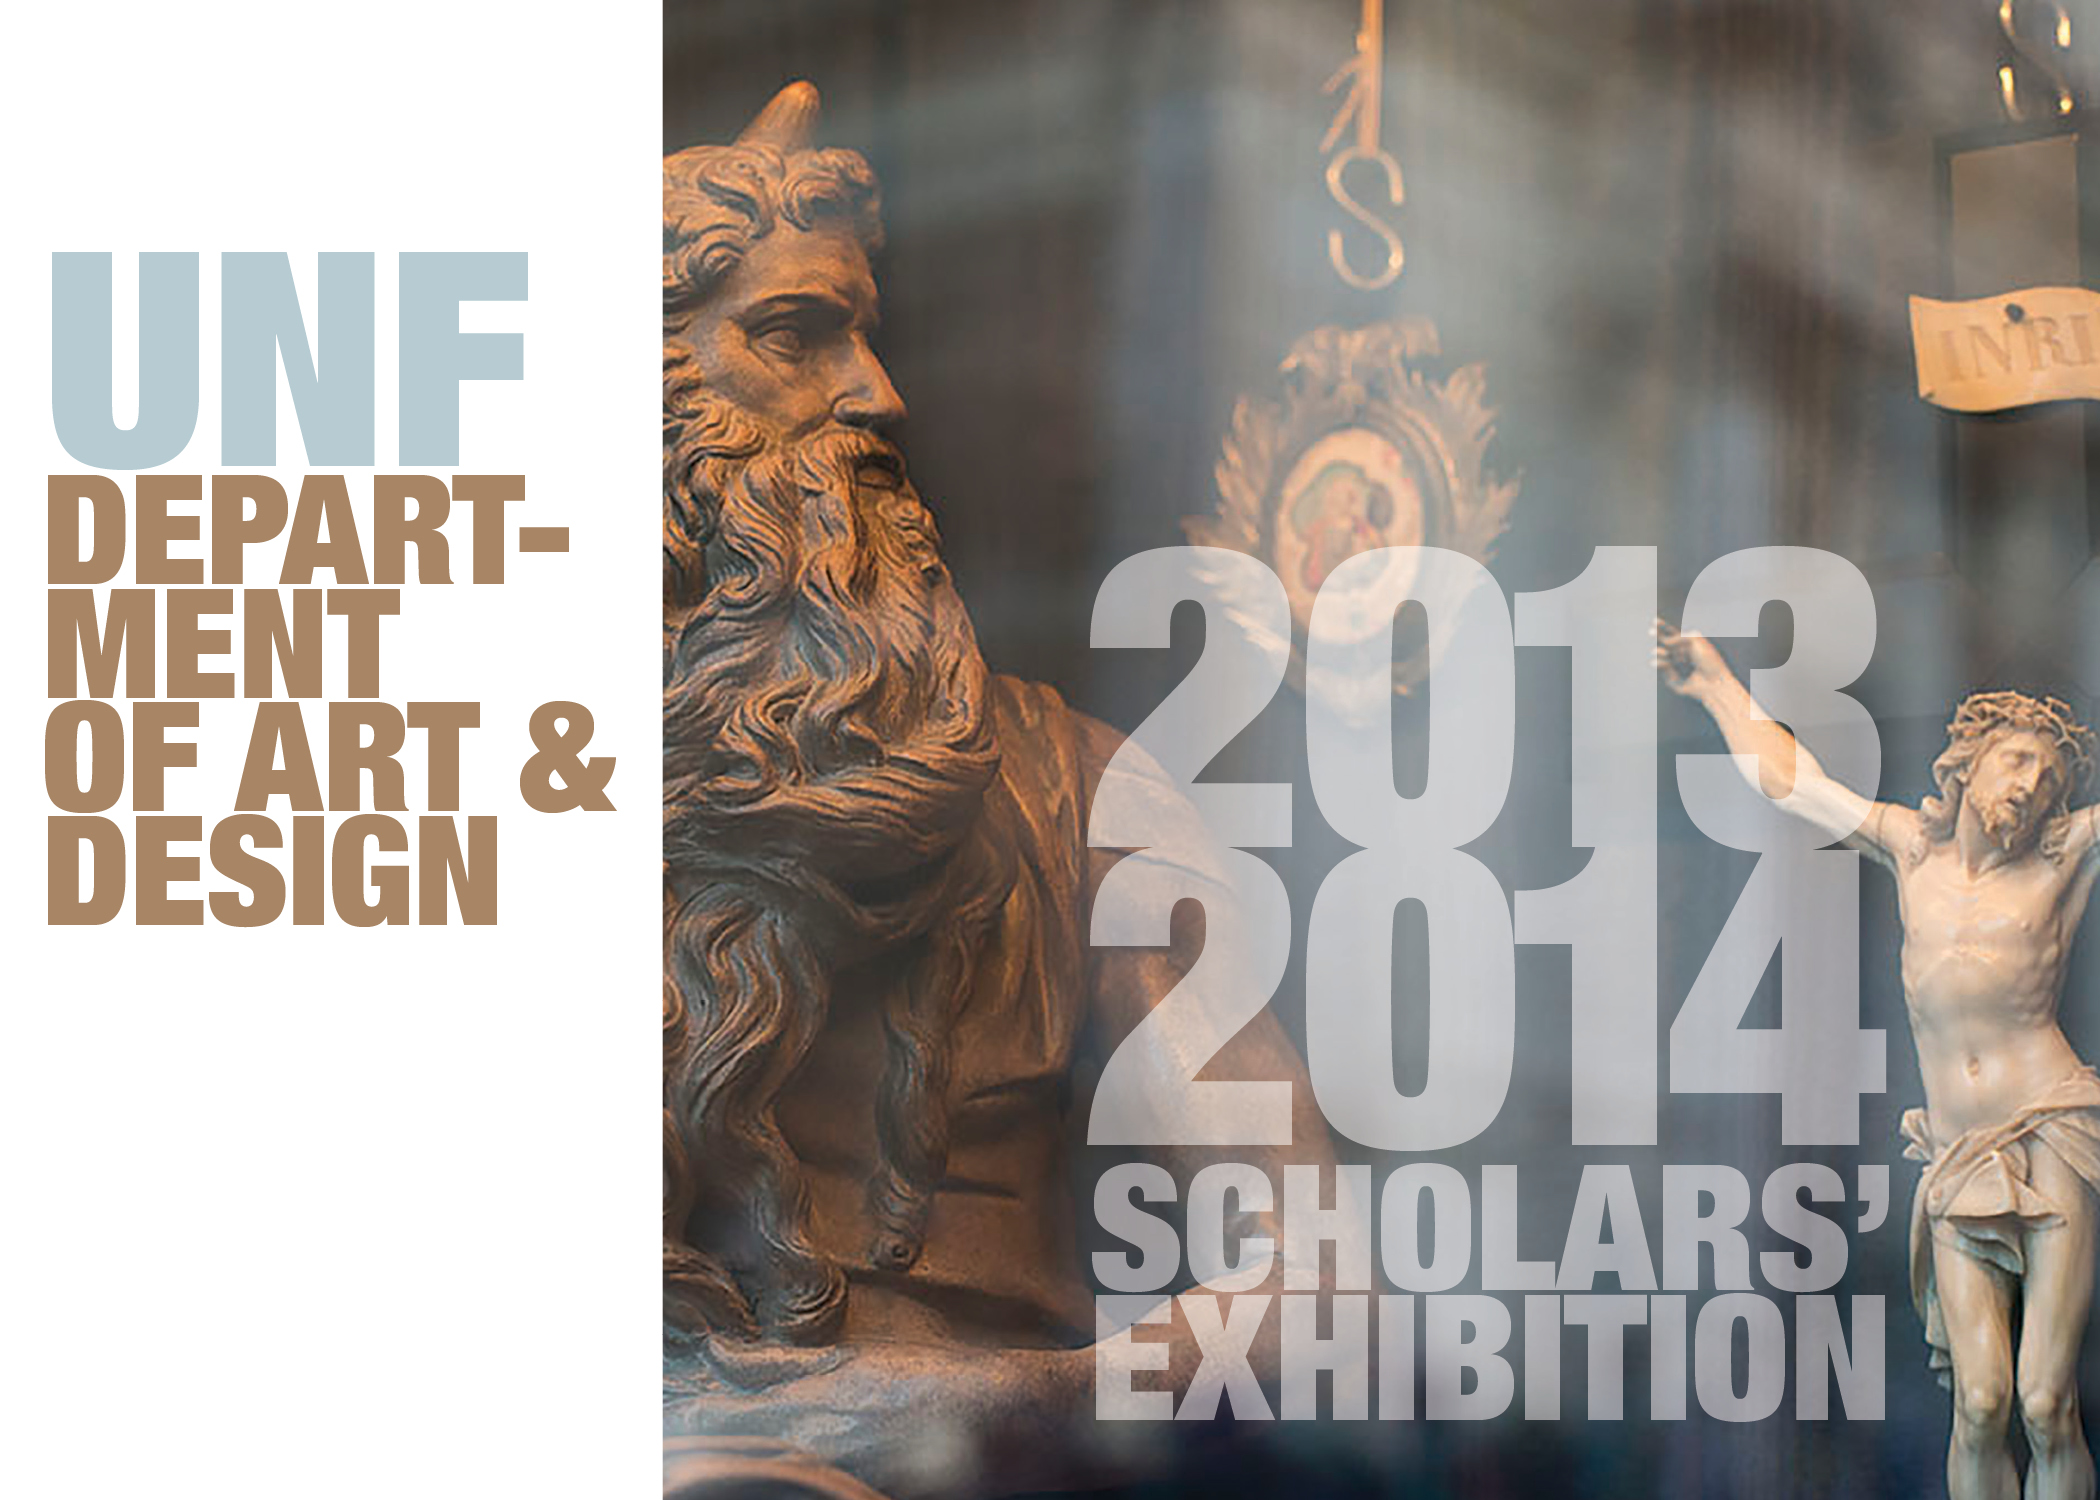 2013 2014 Scholars' Exhibition